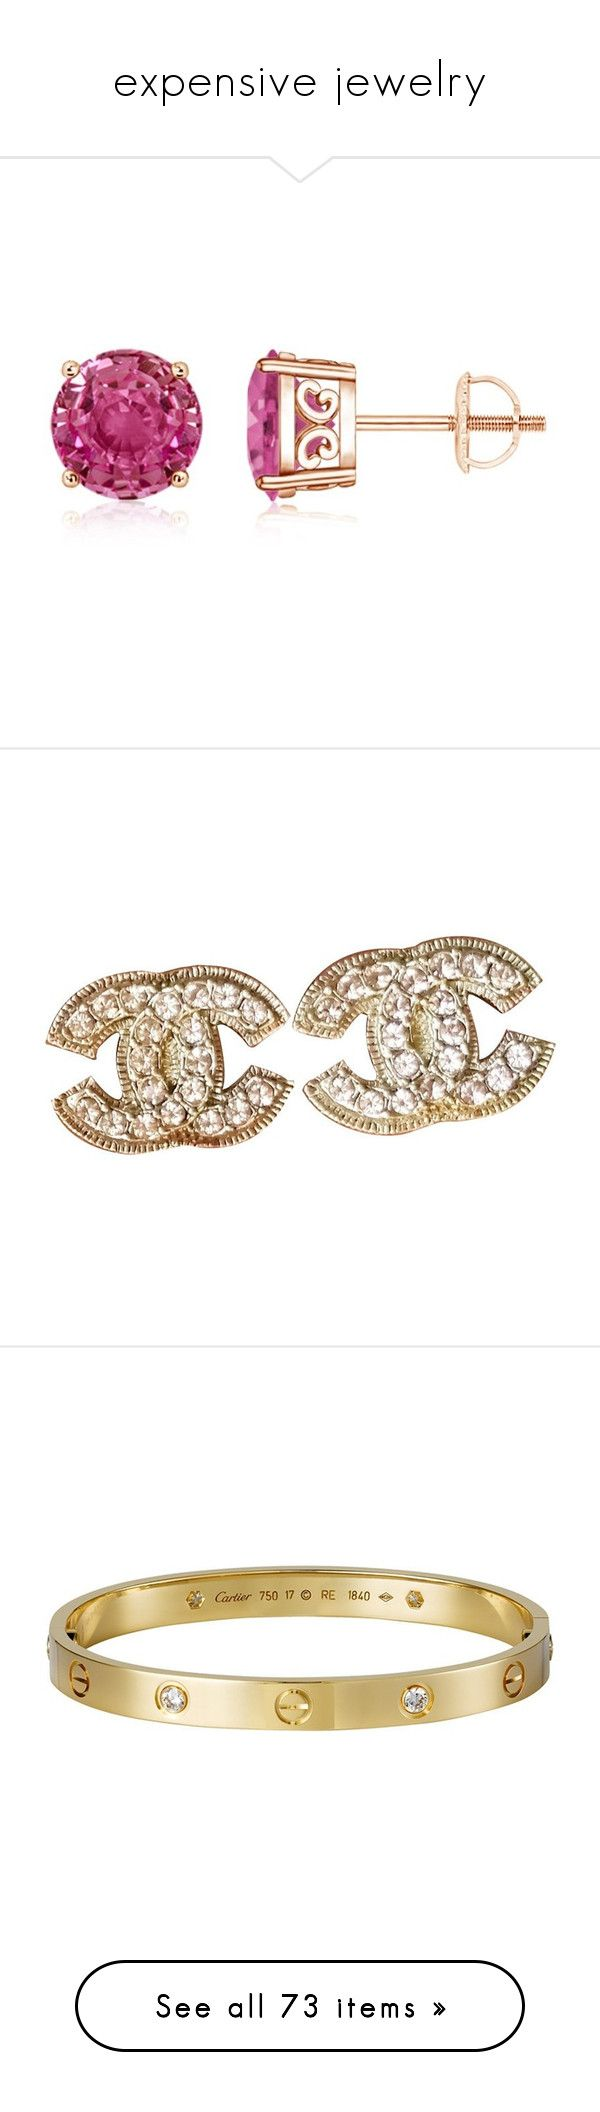 """""""expensive jewelry"""" by mrstomlinson974 on Polyvore featuring jewelry, earrings, vintage looking jewelry, vintage style jewellery, vintage style jewelry, pink sapphire jewelry, pink sapphire earrings, accessories, chanel and chanel earrings"""